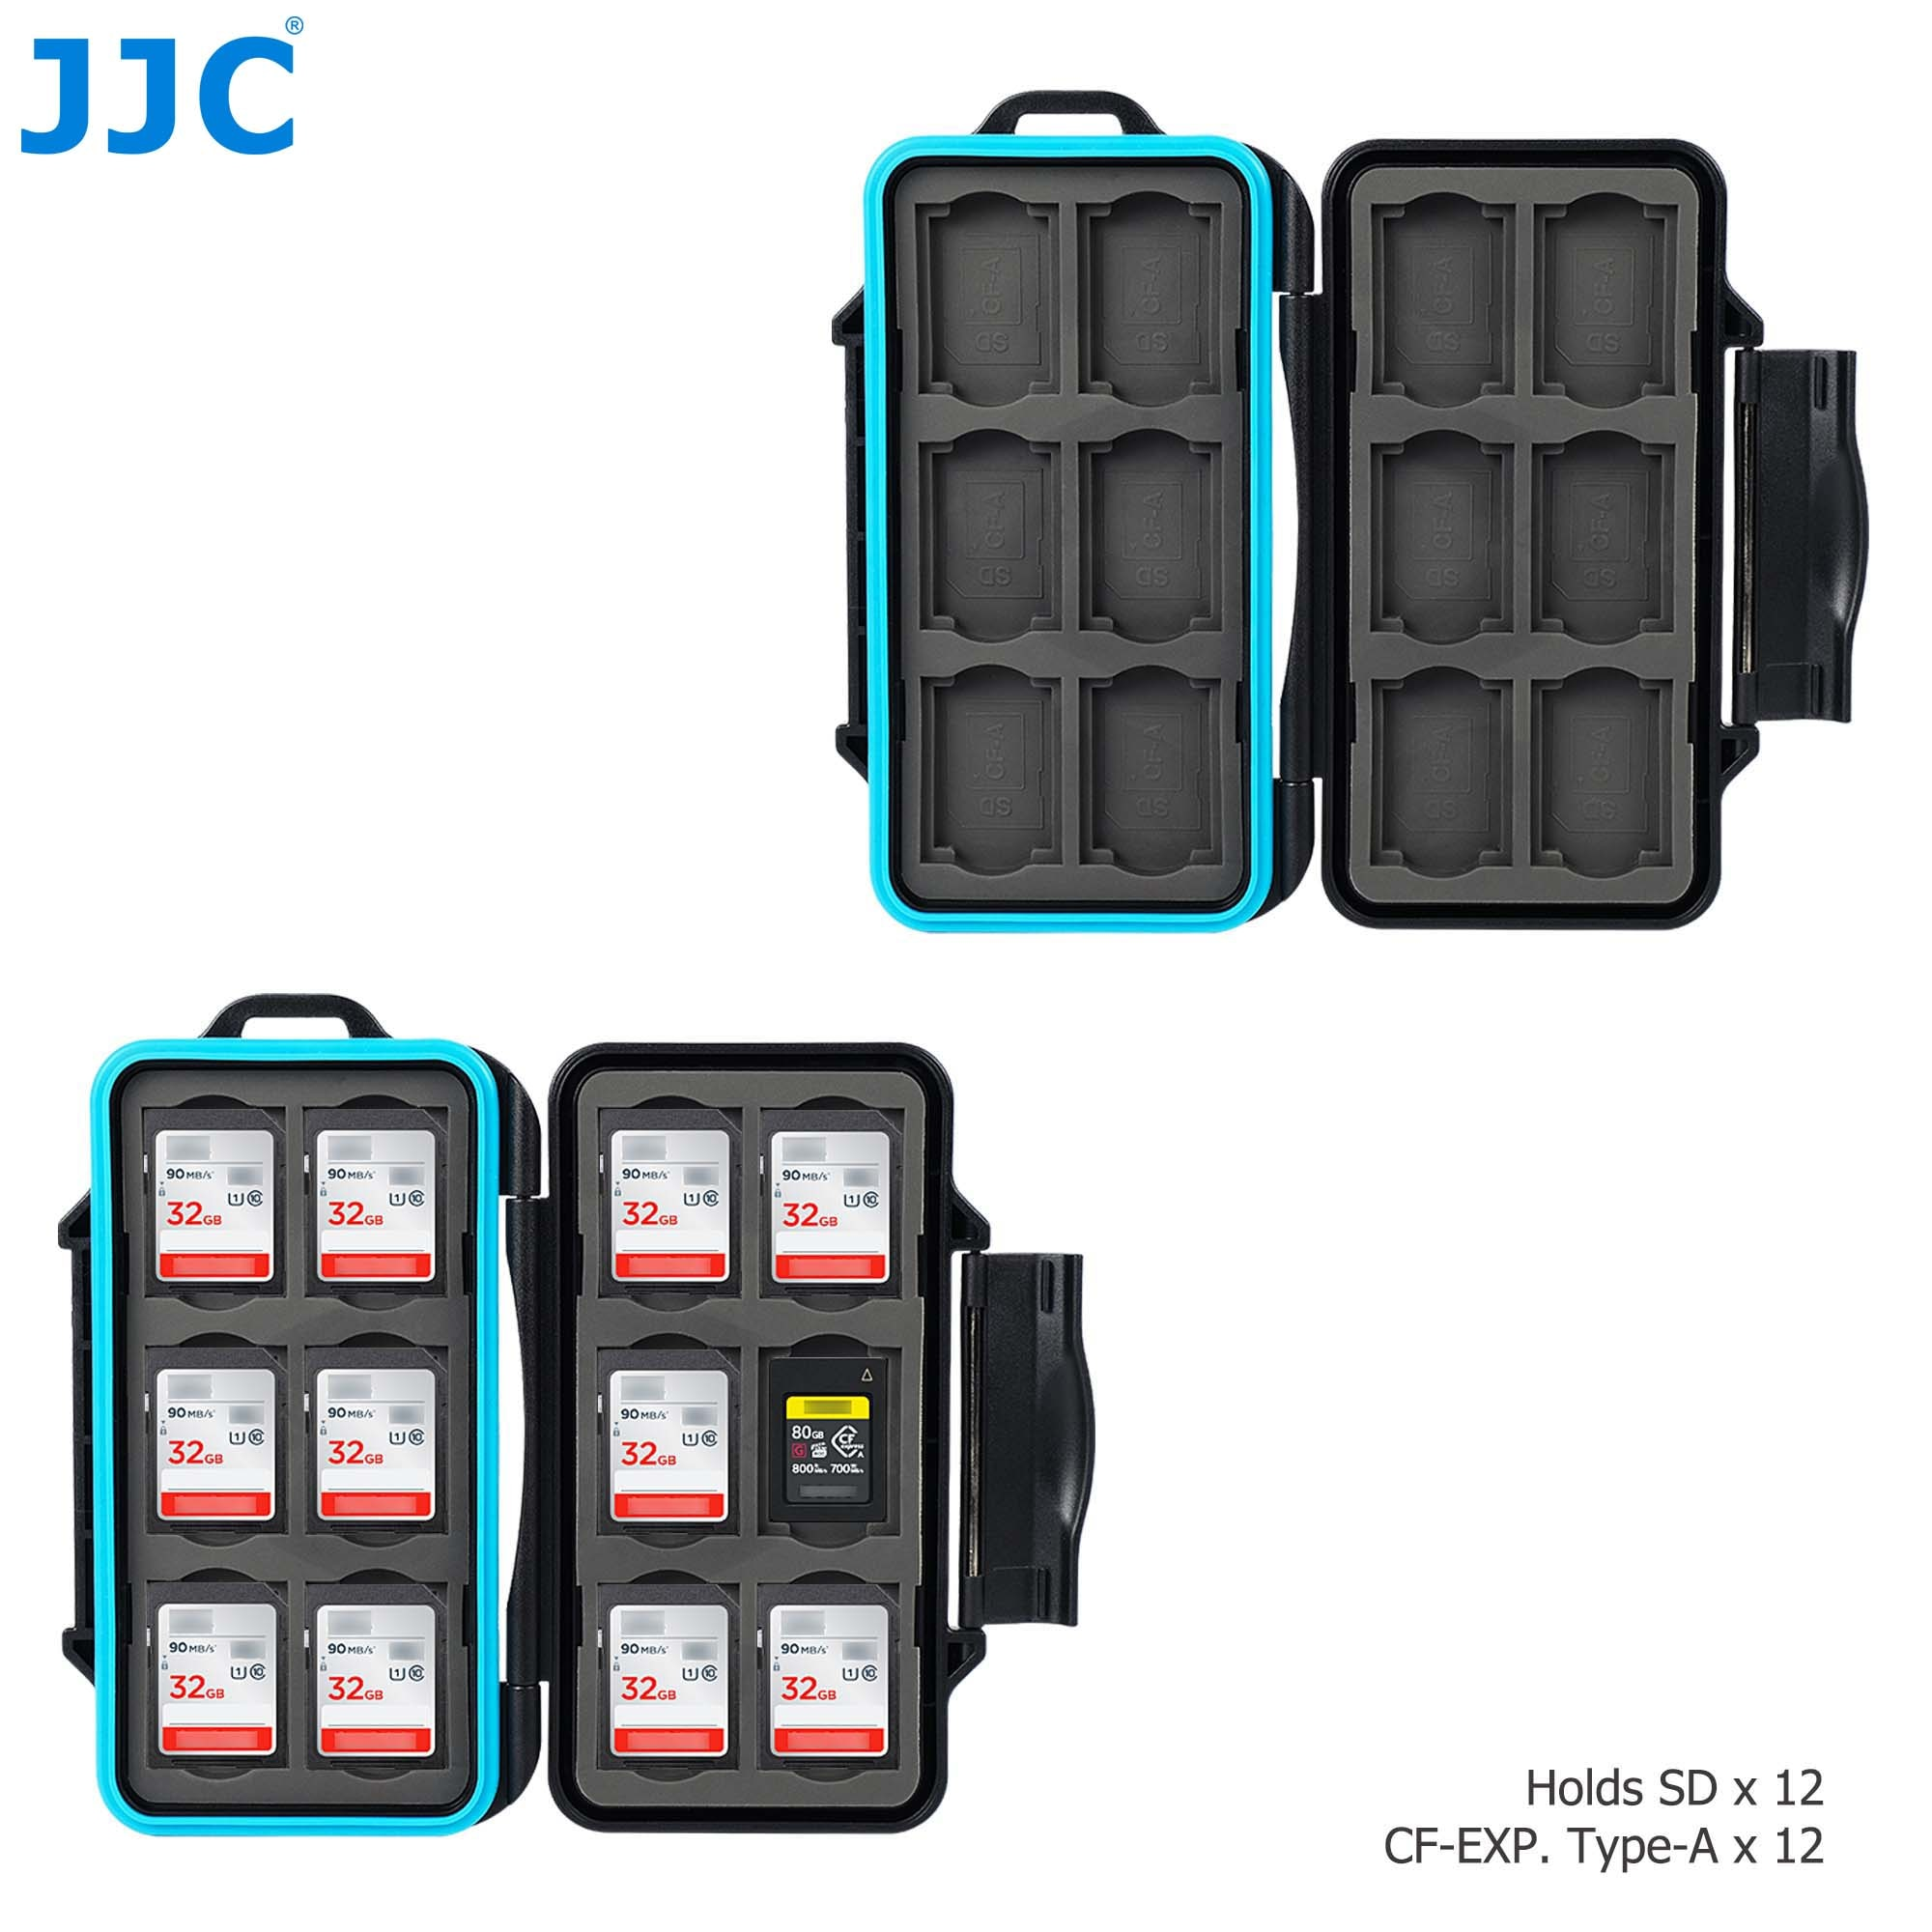 JJC 24 Slots Memory Card Case Holder for 12 SD SDHC SDXC + 12 CFexpress Type A Card Storage Organizer Box with Carabiner